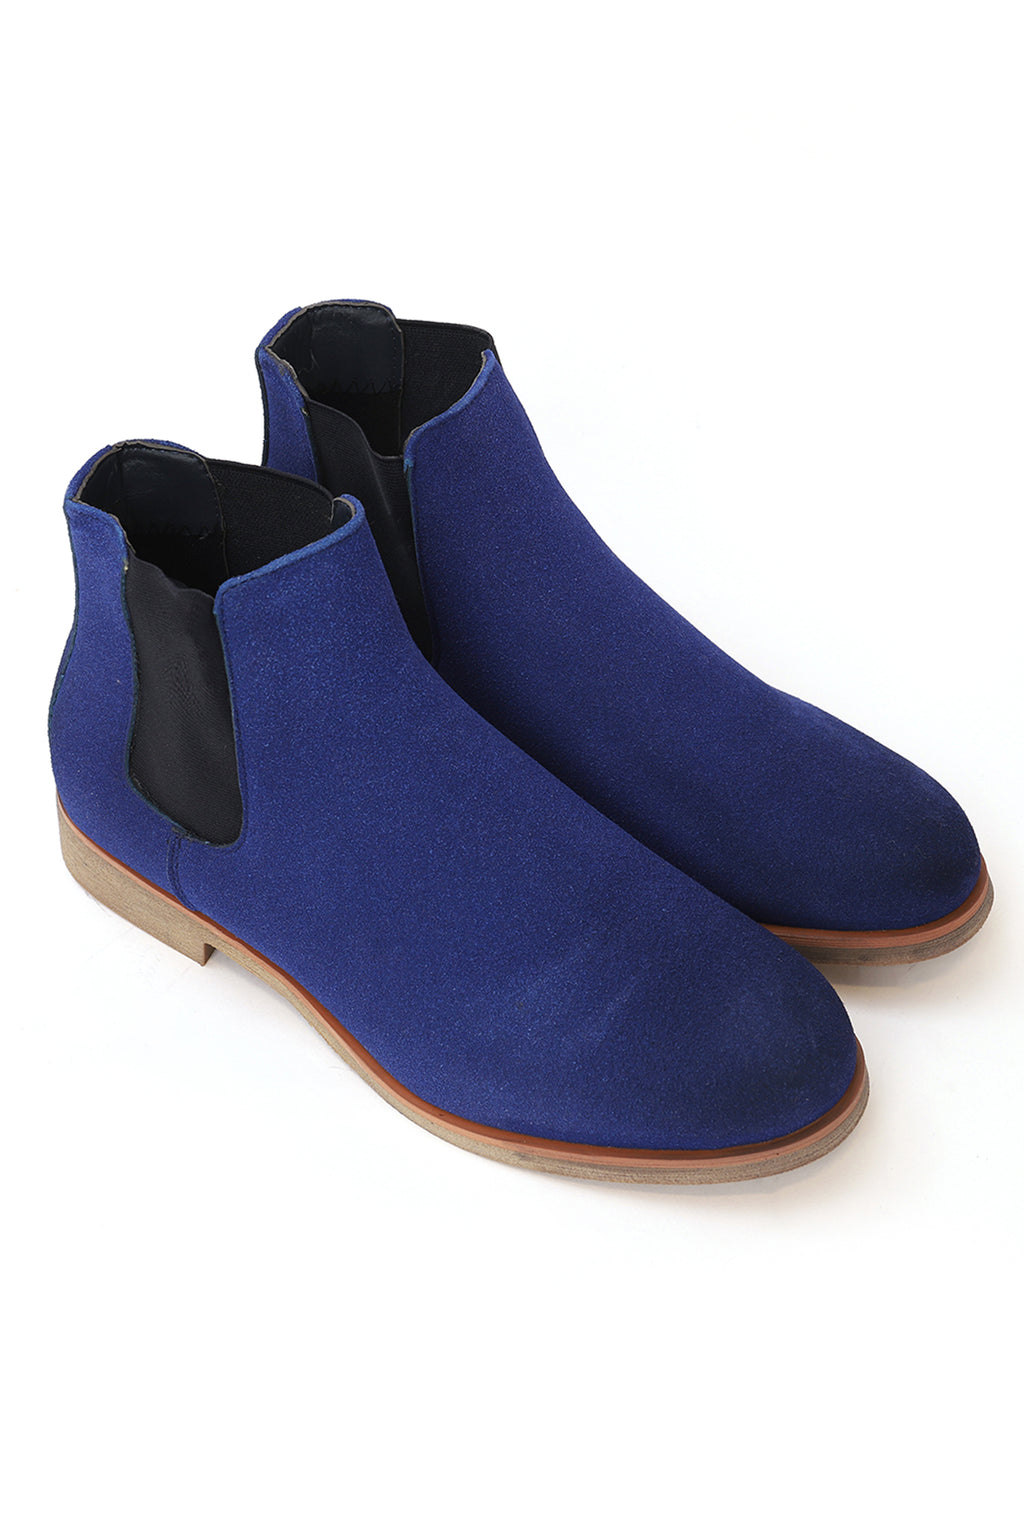 CHELSEA BOOTS -BLUE